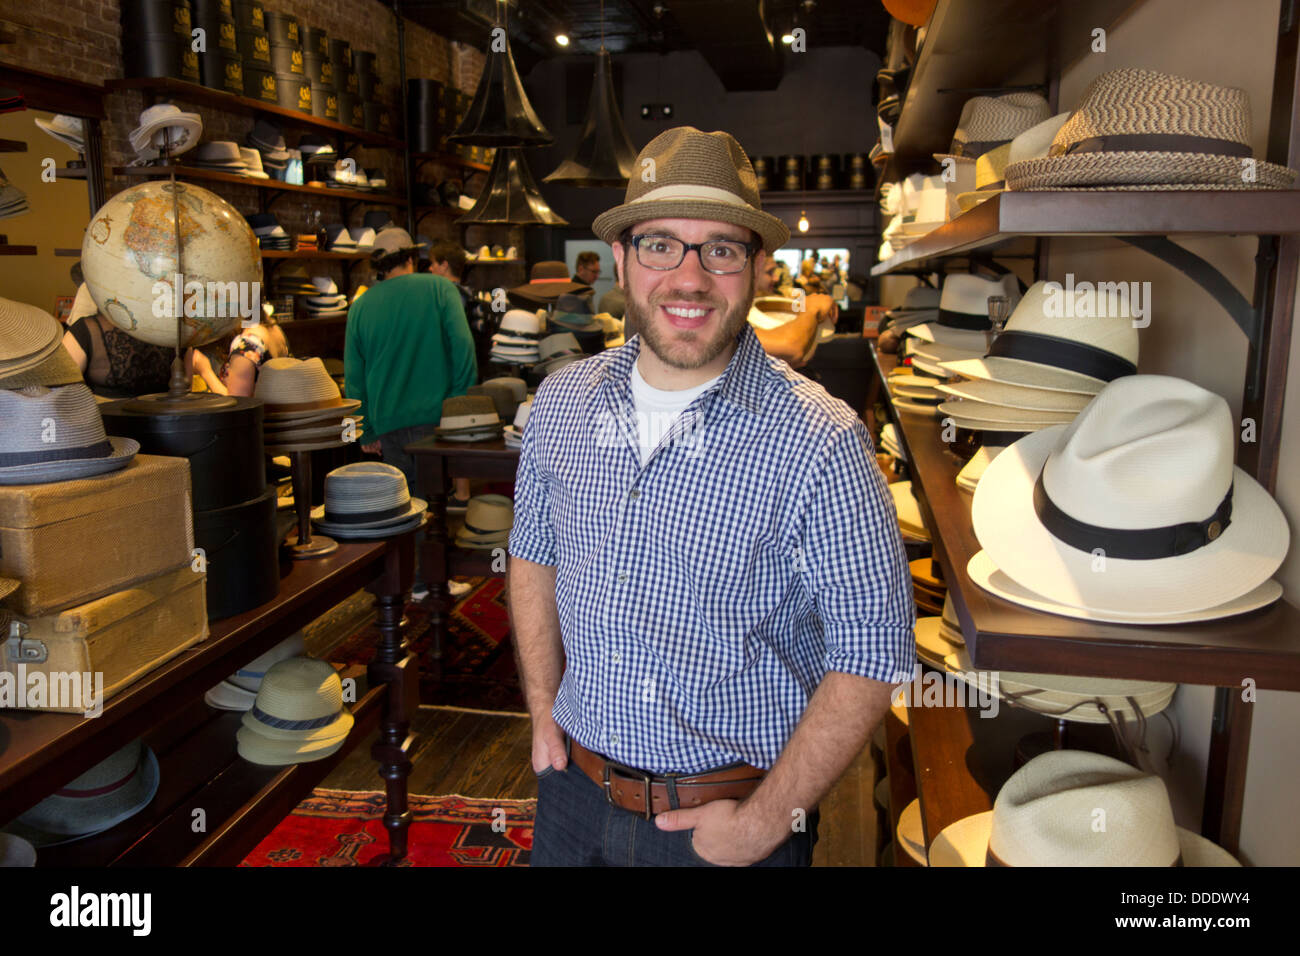 ccc4ccb99e0 Goorin Brothers Hat Shop Stock Photos   Goorin Brothers Hat Shop ...